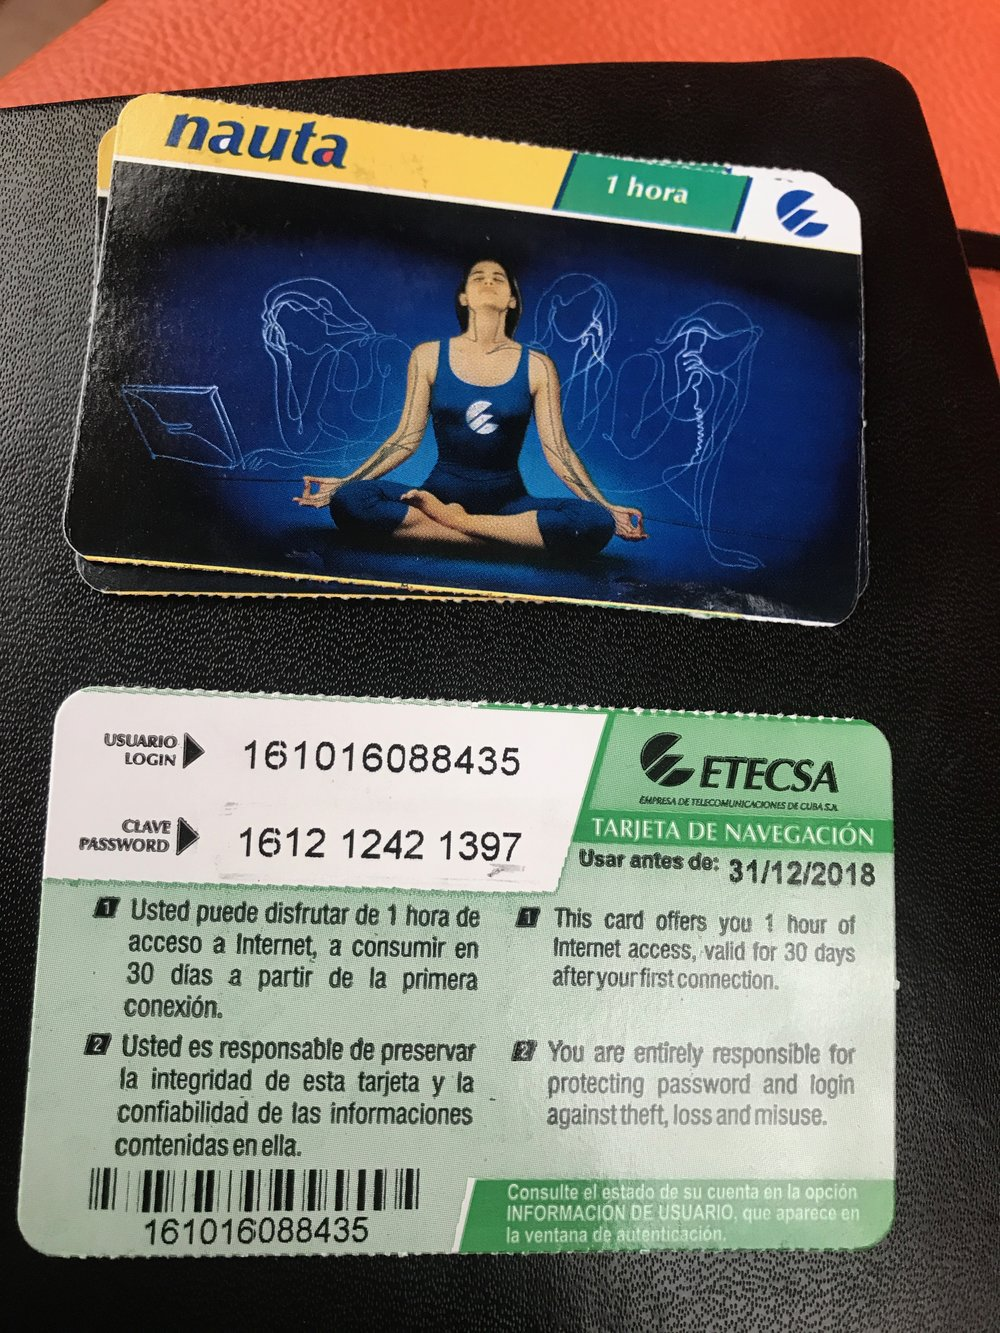 One of the Internet cards you can purchase that grant you 60 minutes of Internet usage in Cuba.